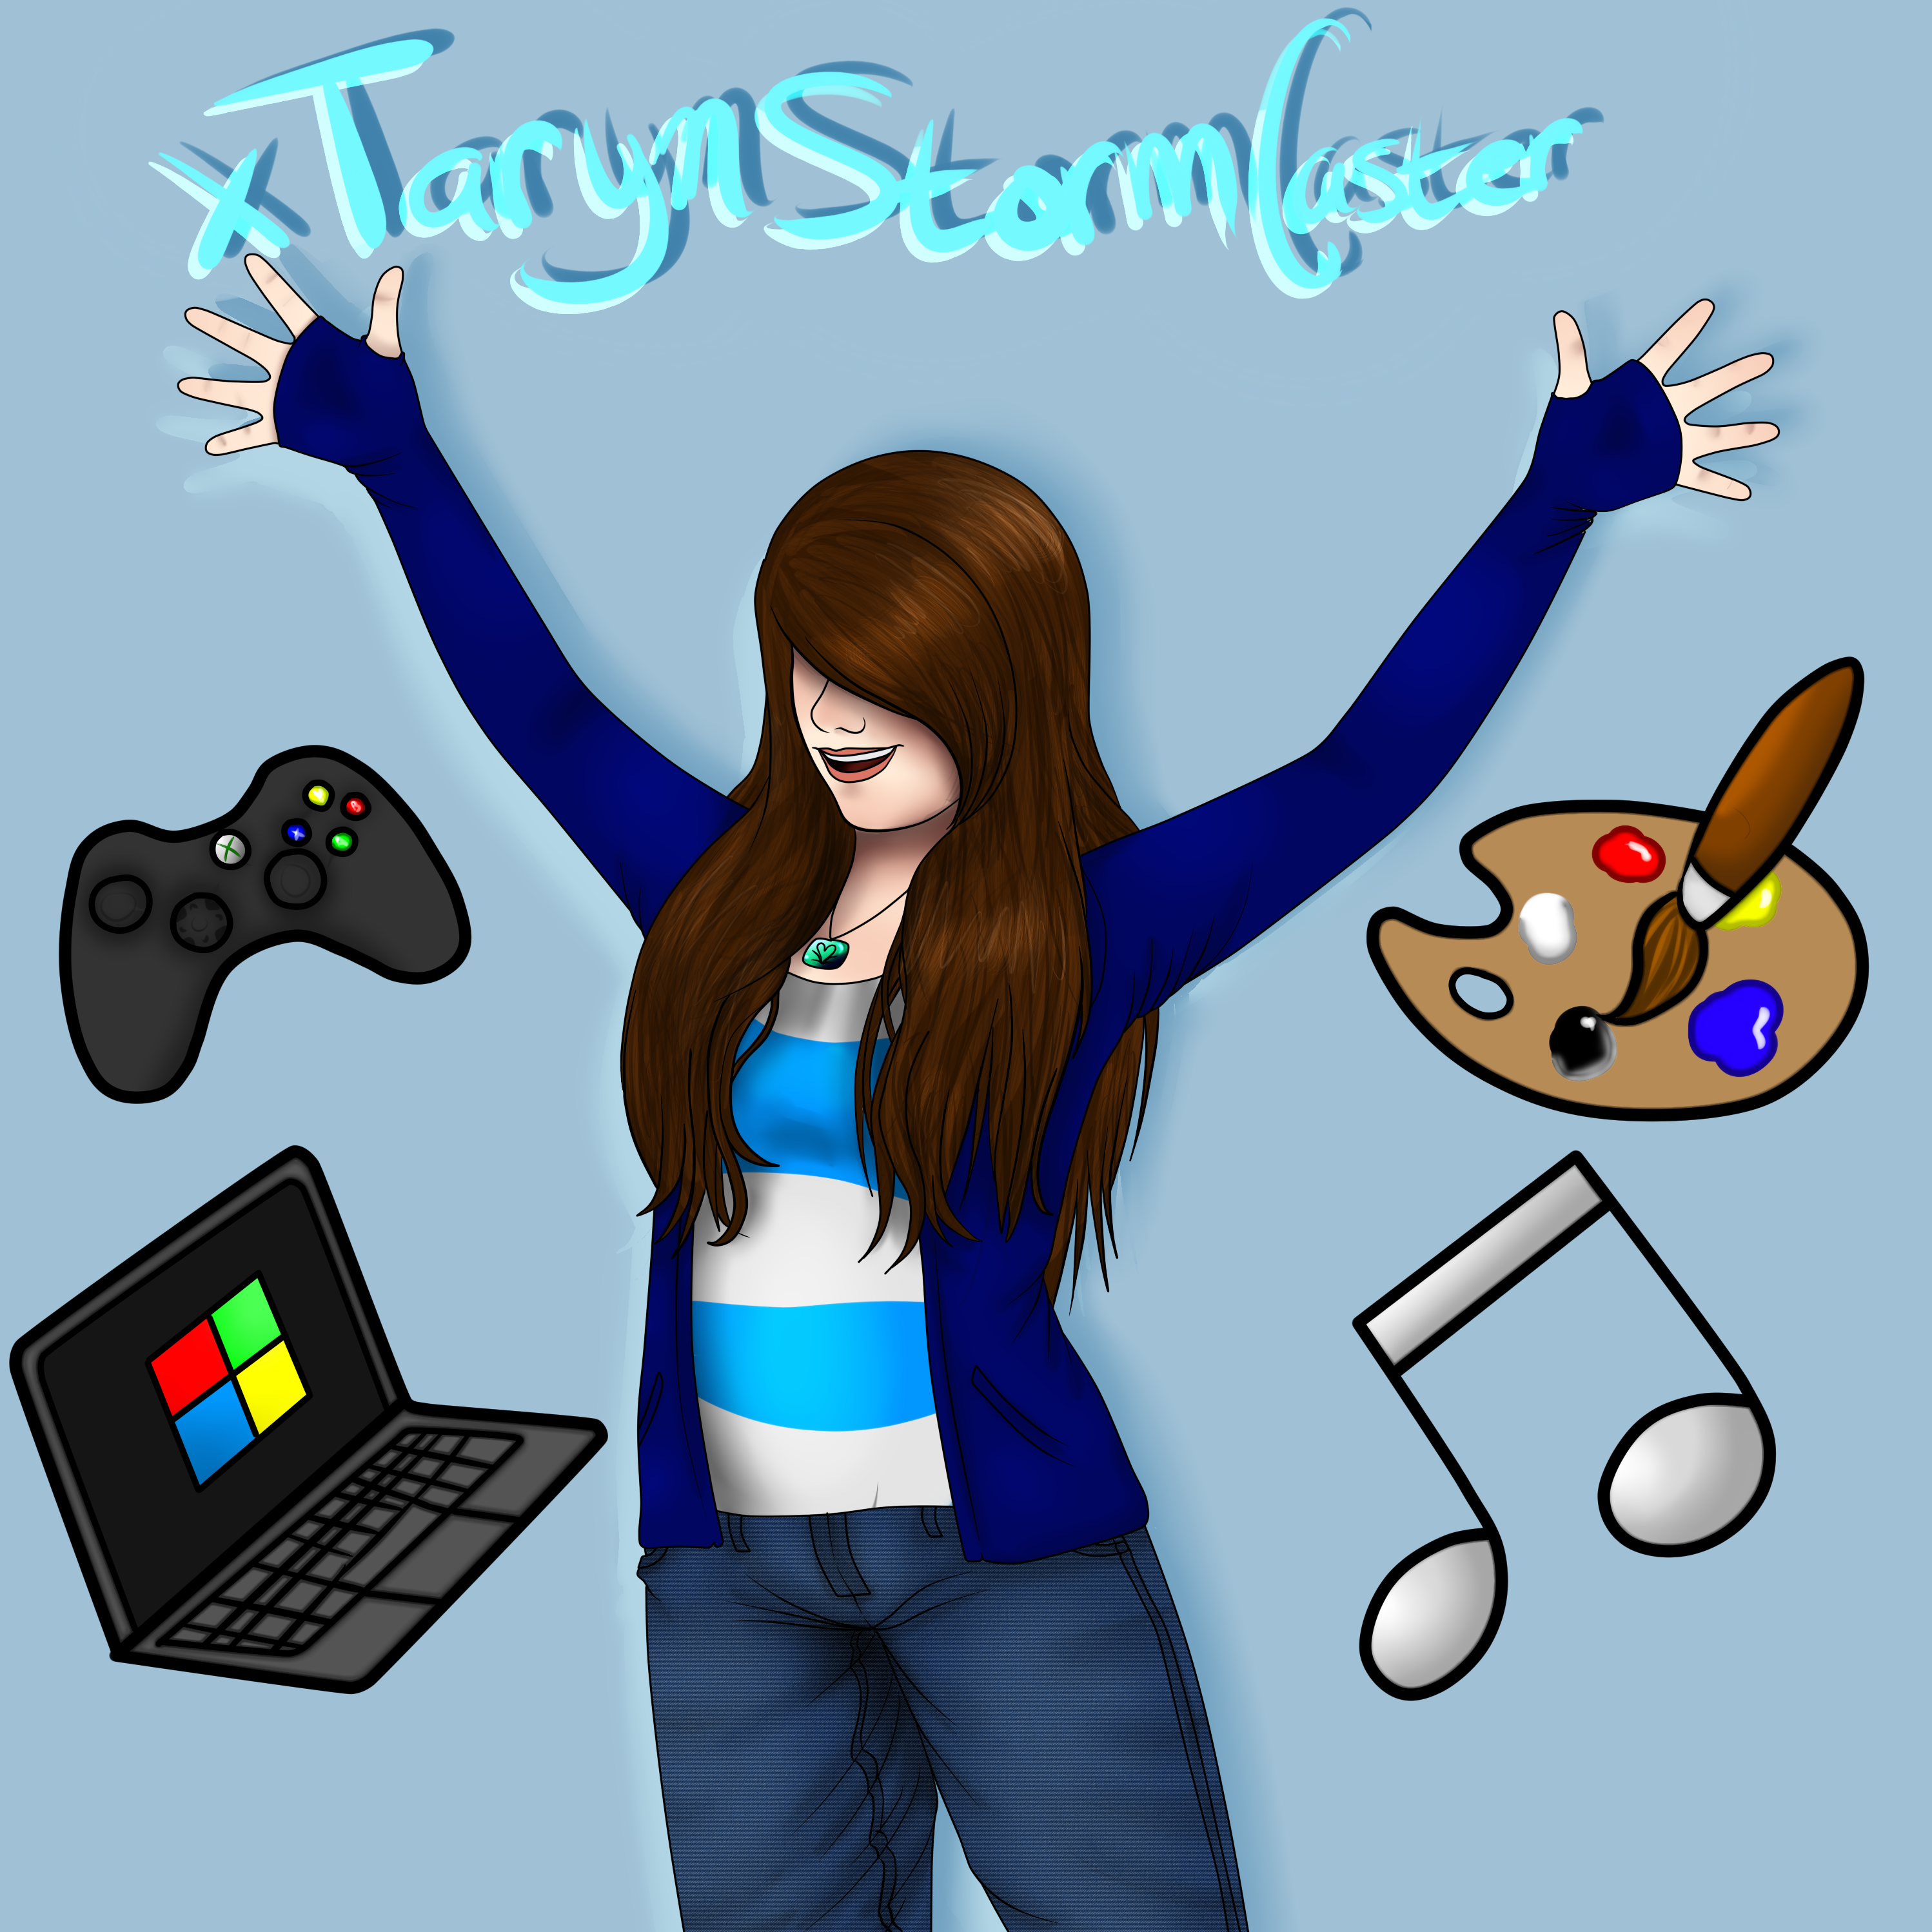 xTarynStormCaster's Profile Picture